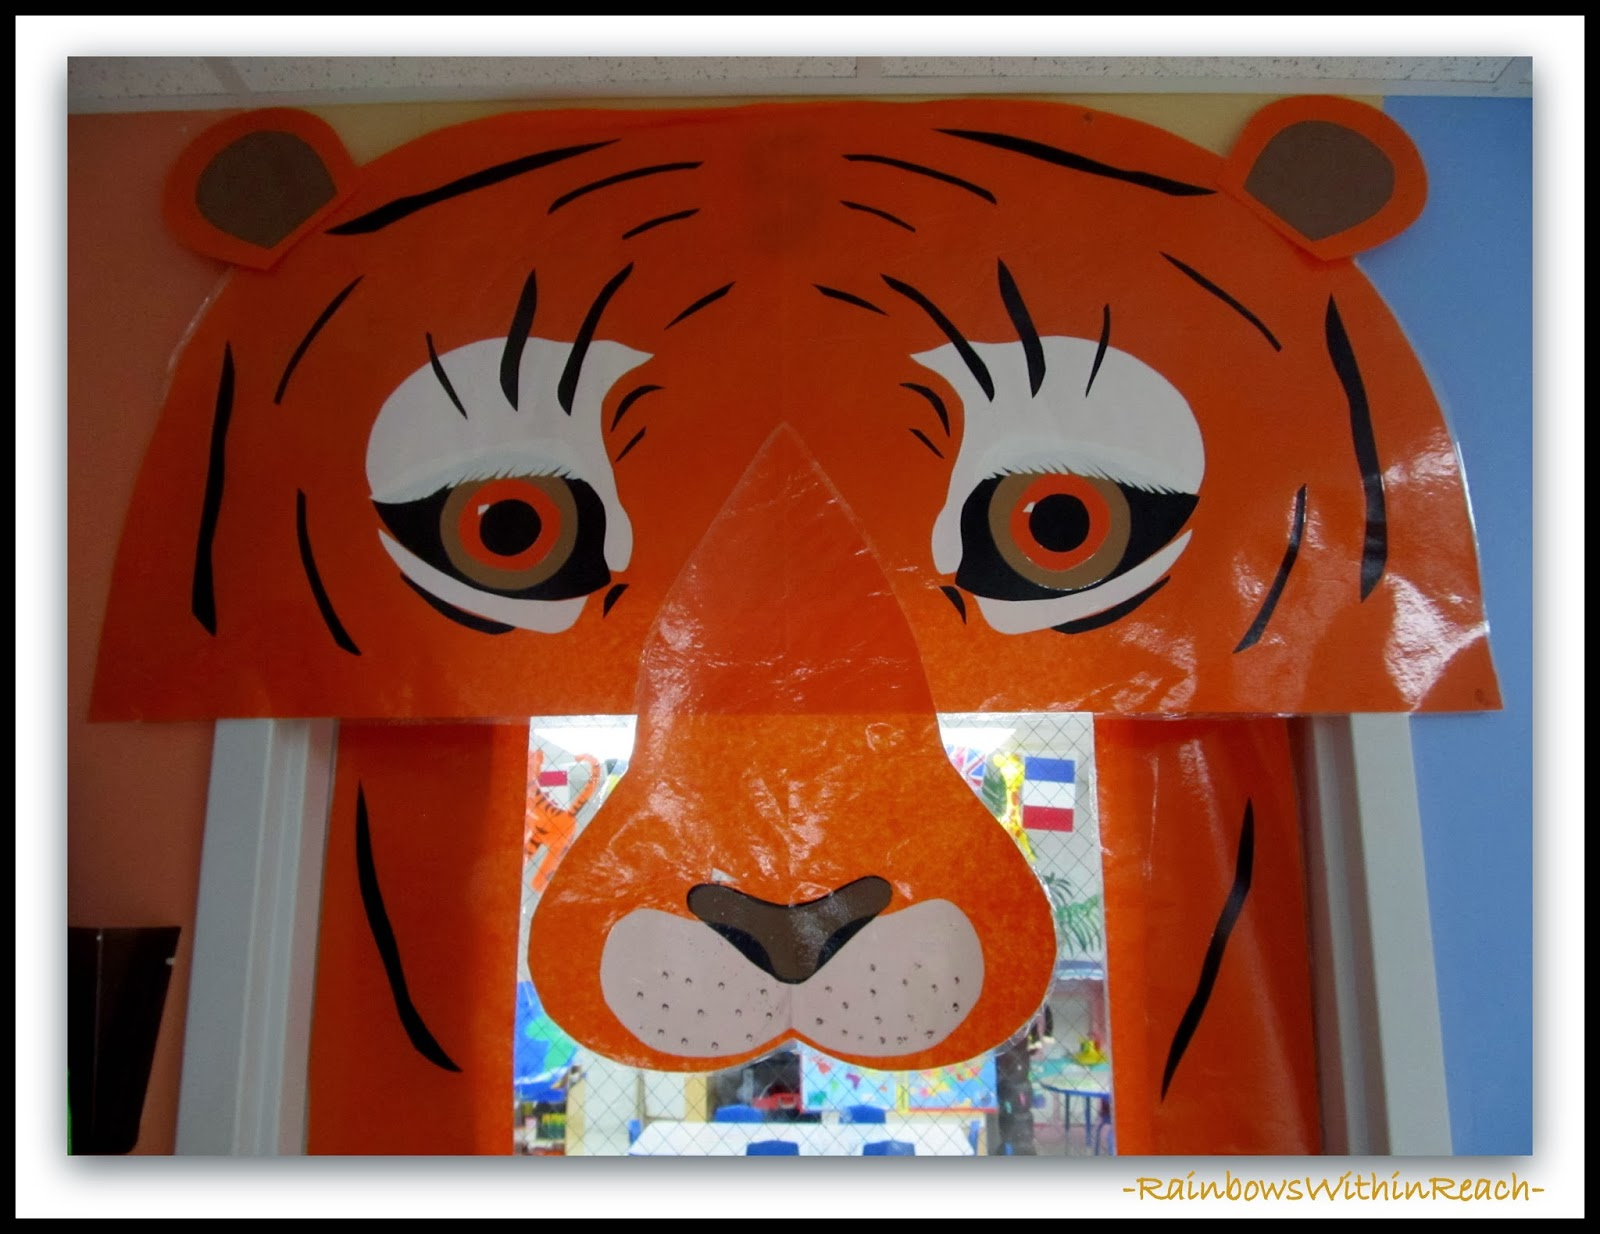 Decorated Classroom Door with Tiger Theme (face detail) via RainbowsWithinReach